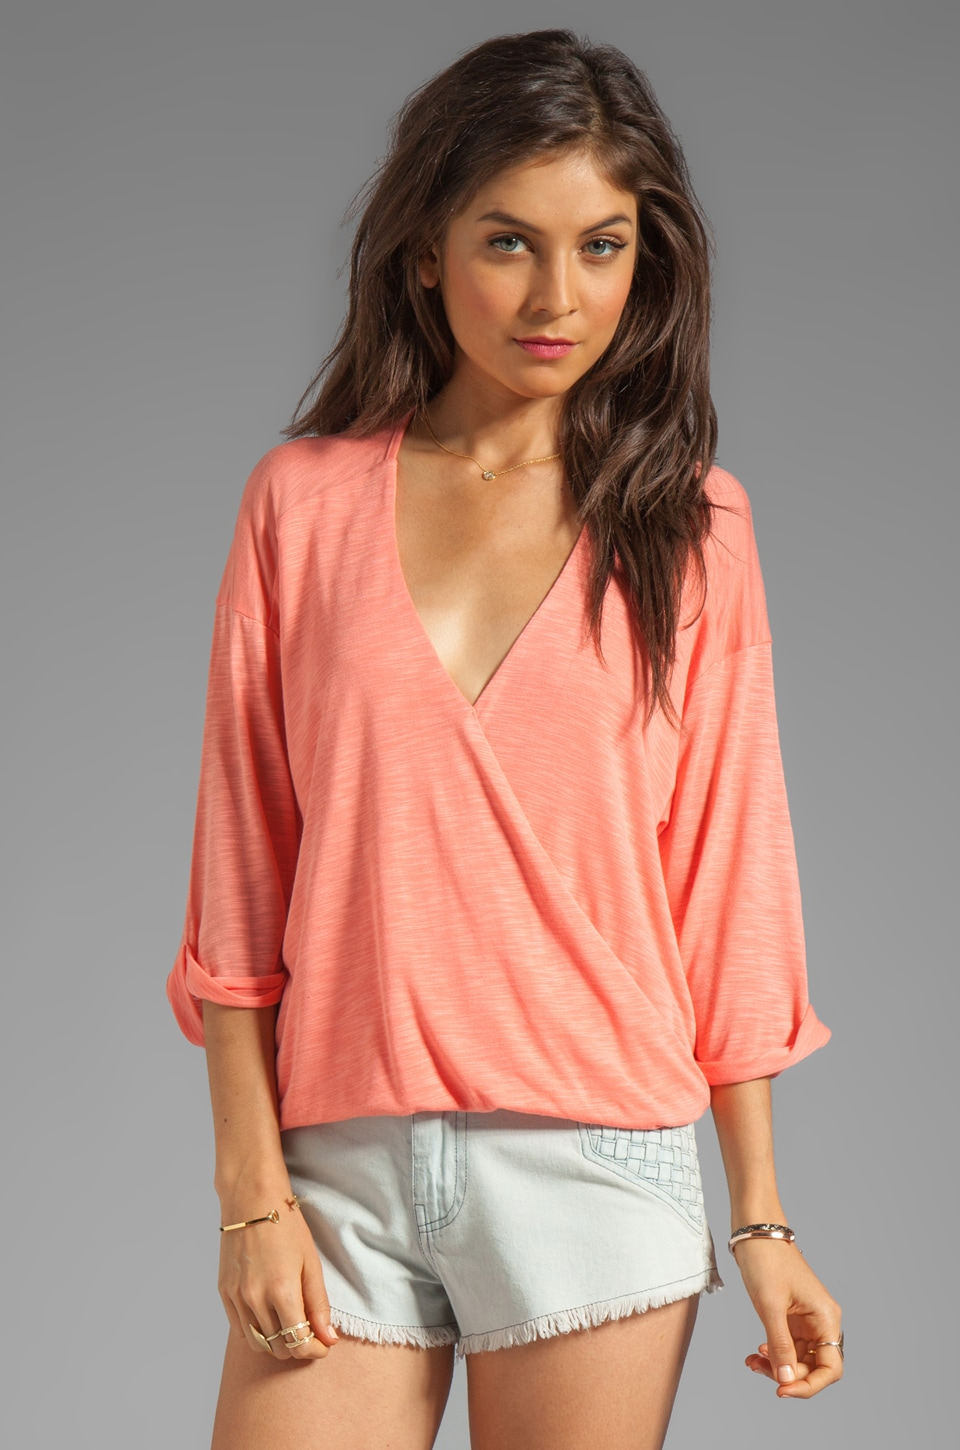 Blue Life 3/4 Sleeve Hayley Top in Mesa